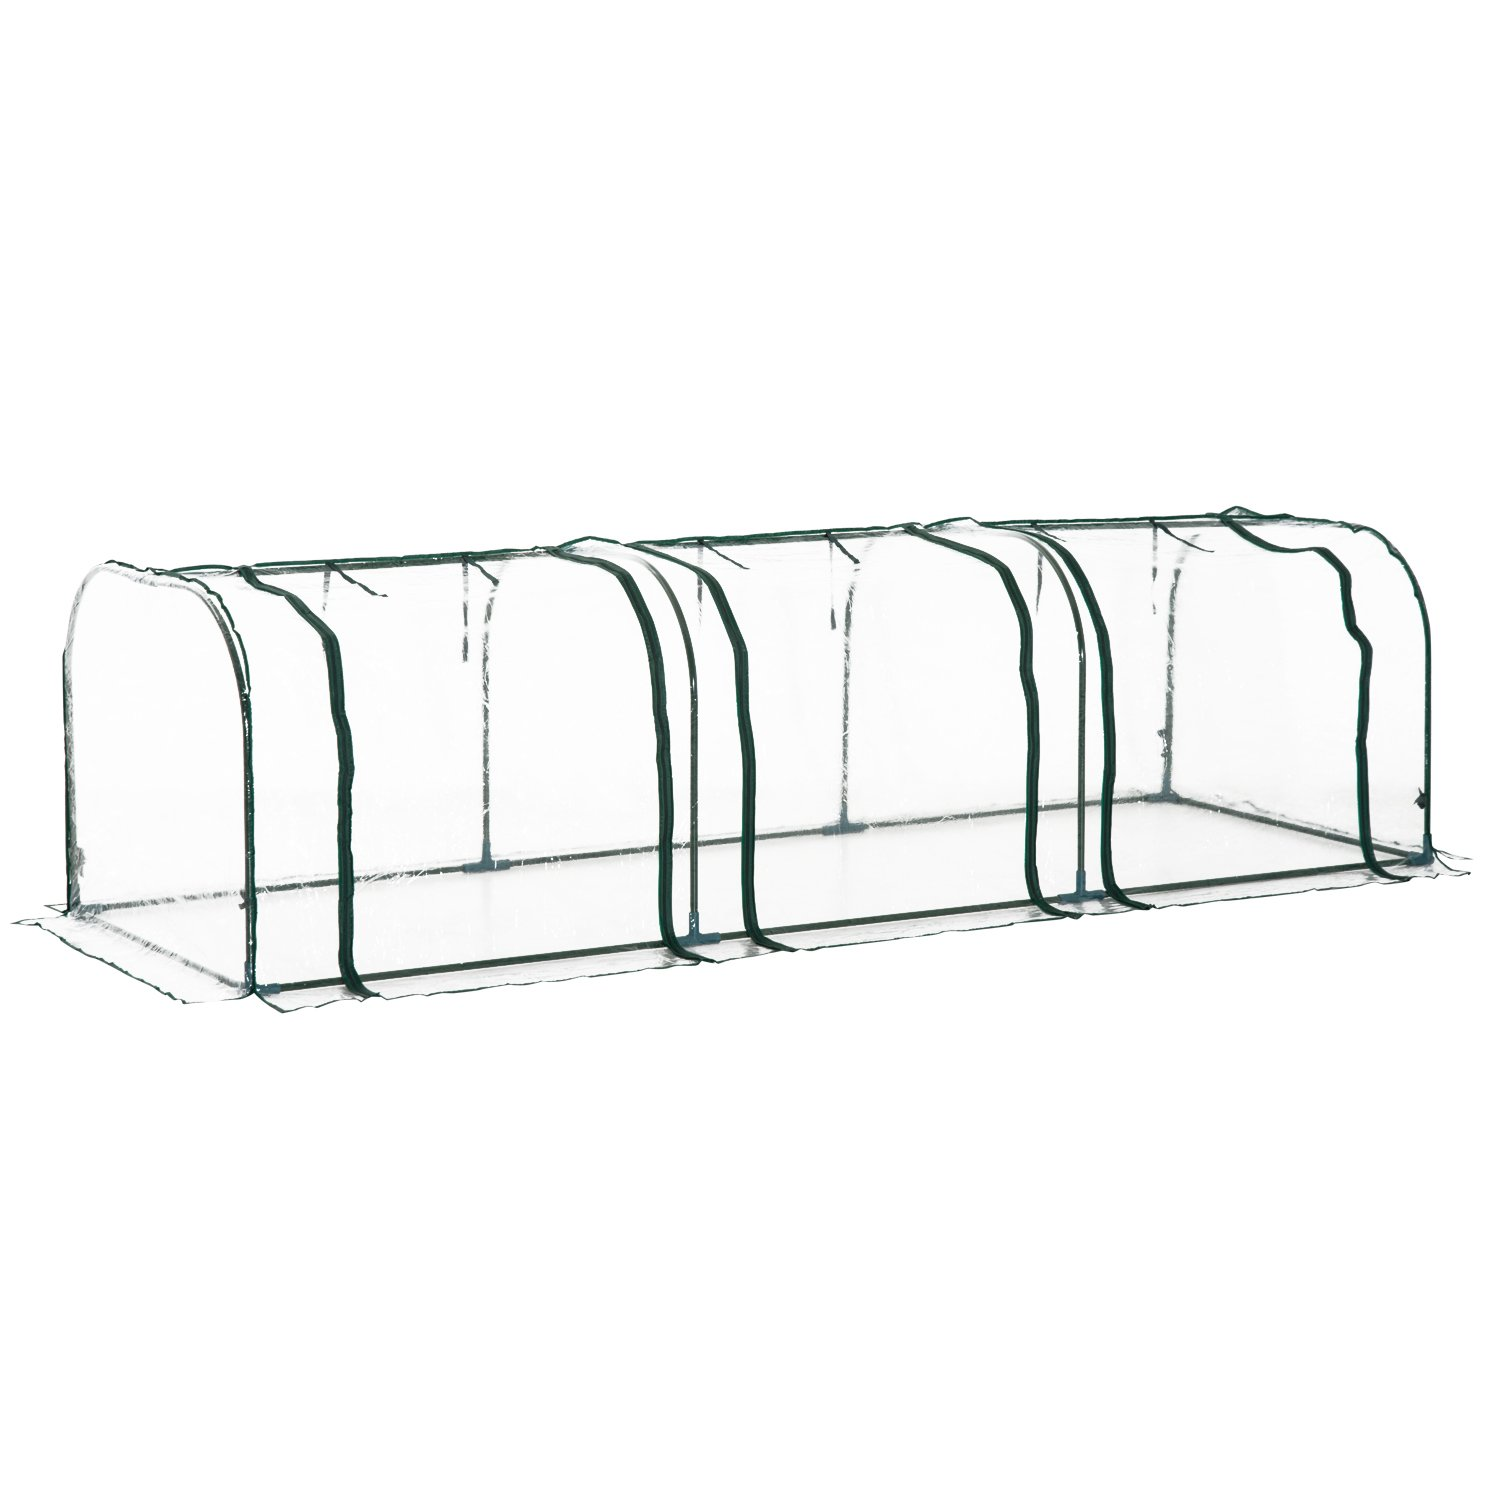 Outsunny Large Transparent PVC Tunnel Greenhouse Green Grow House Steel Frame 300x100x80cm manufactured for MHStar UK01-04760331